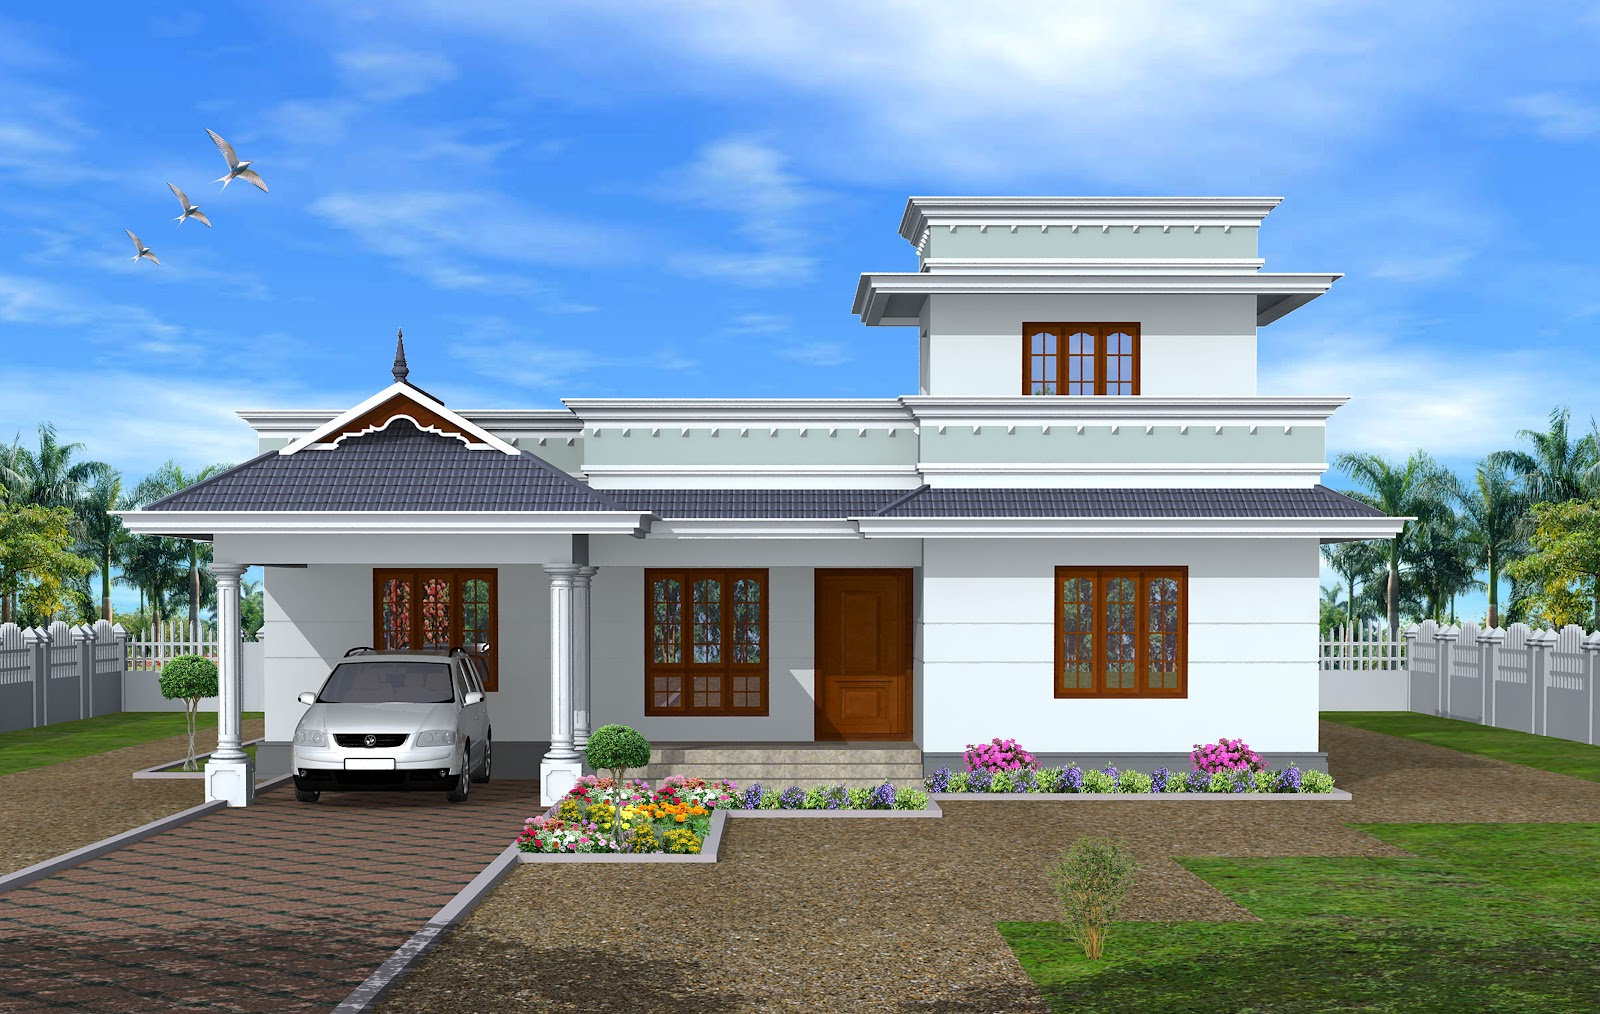 Green homes construction single floor kerala model house for Best home image